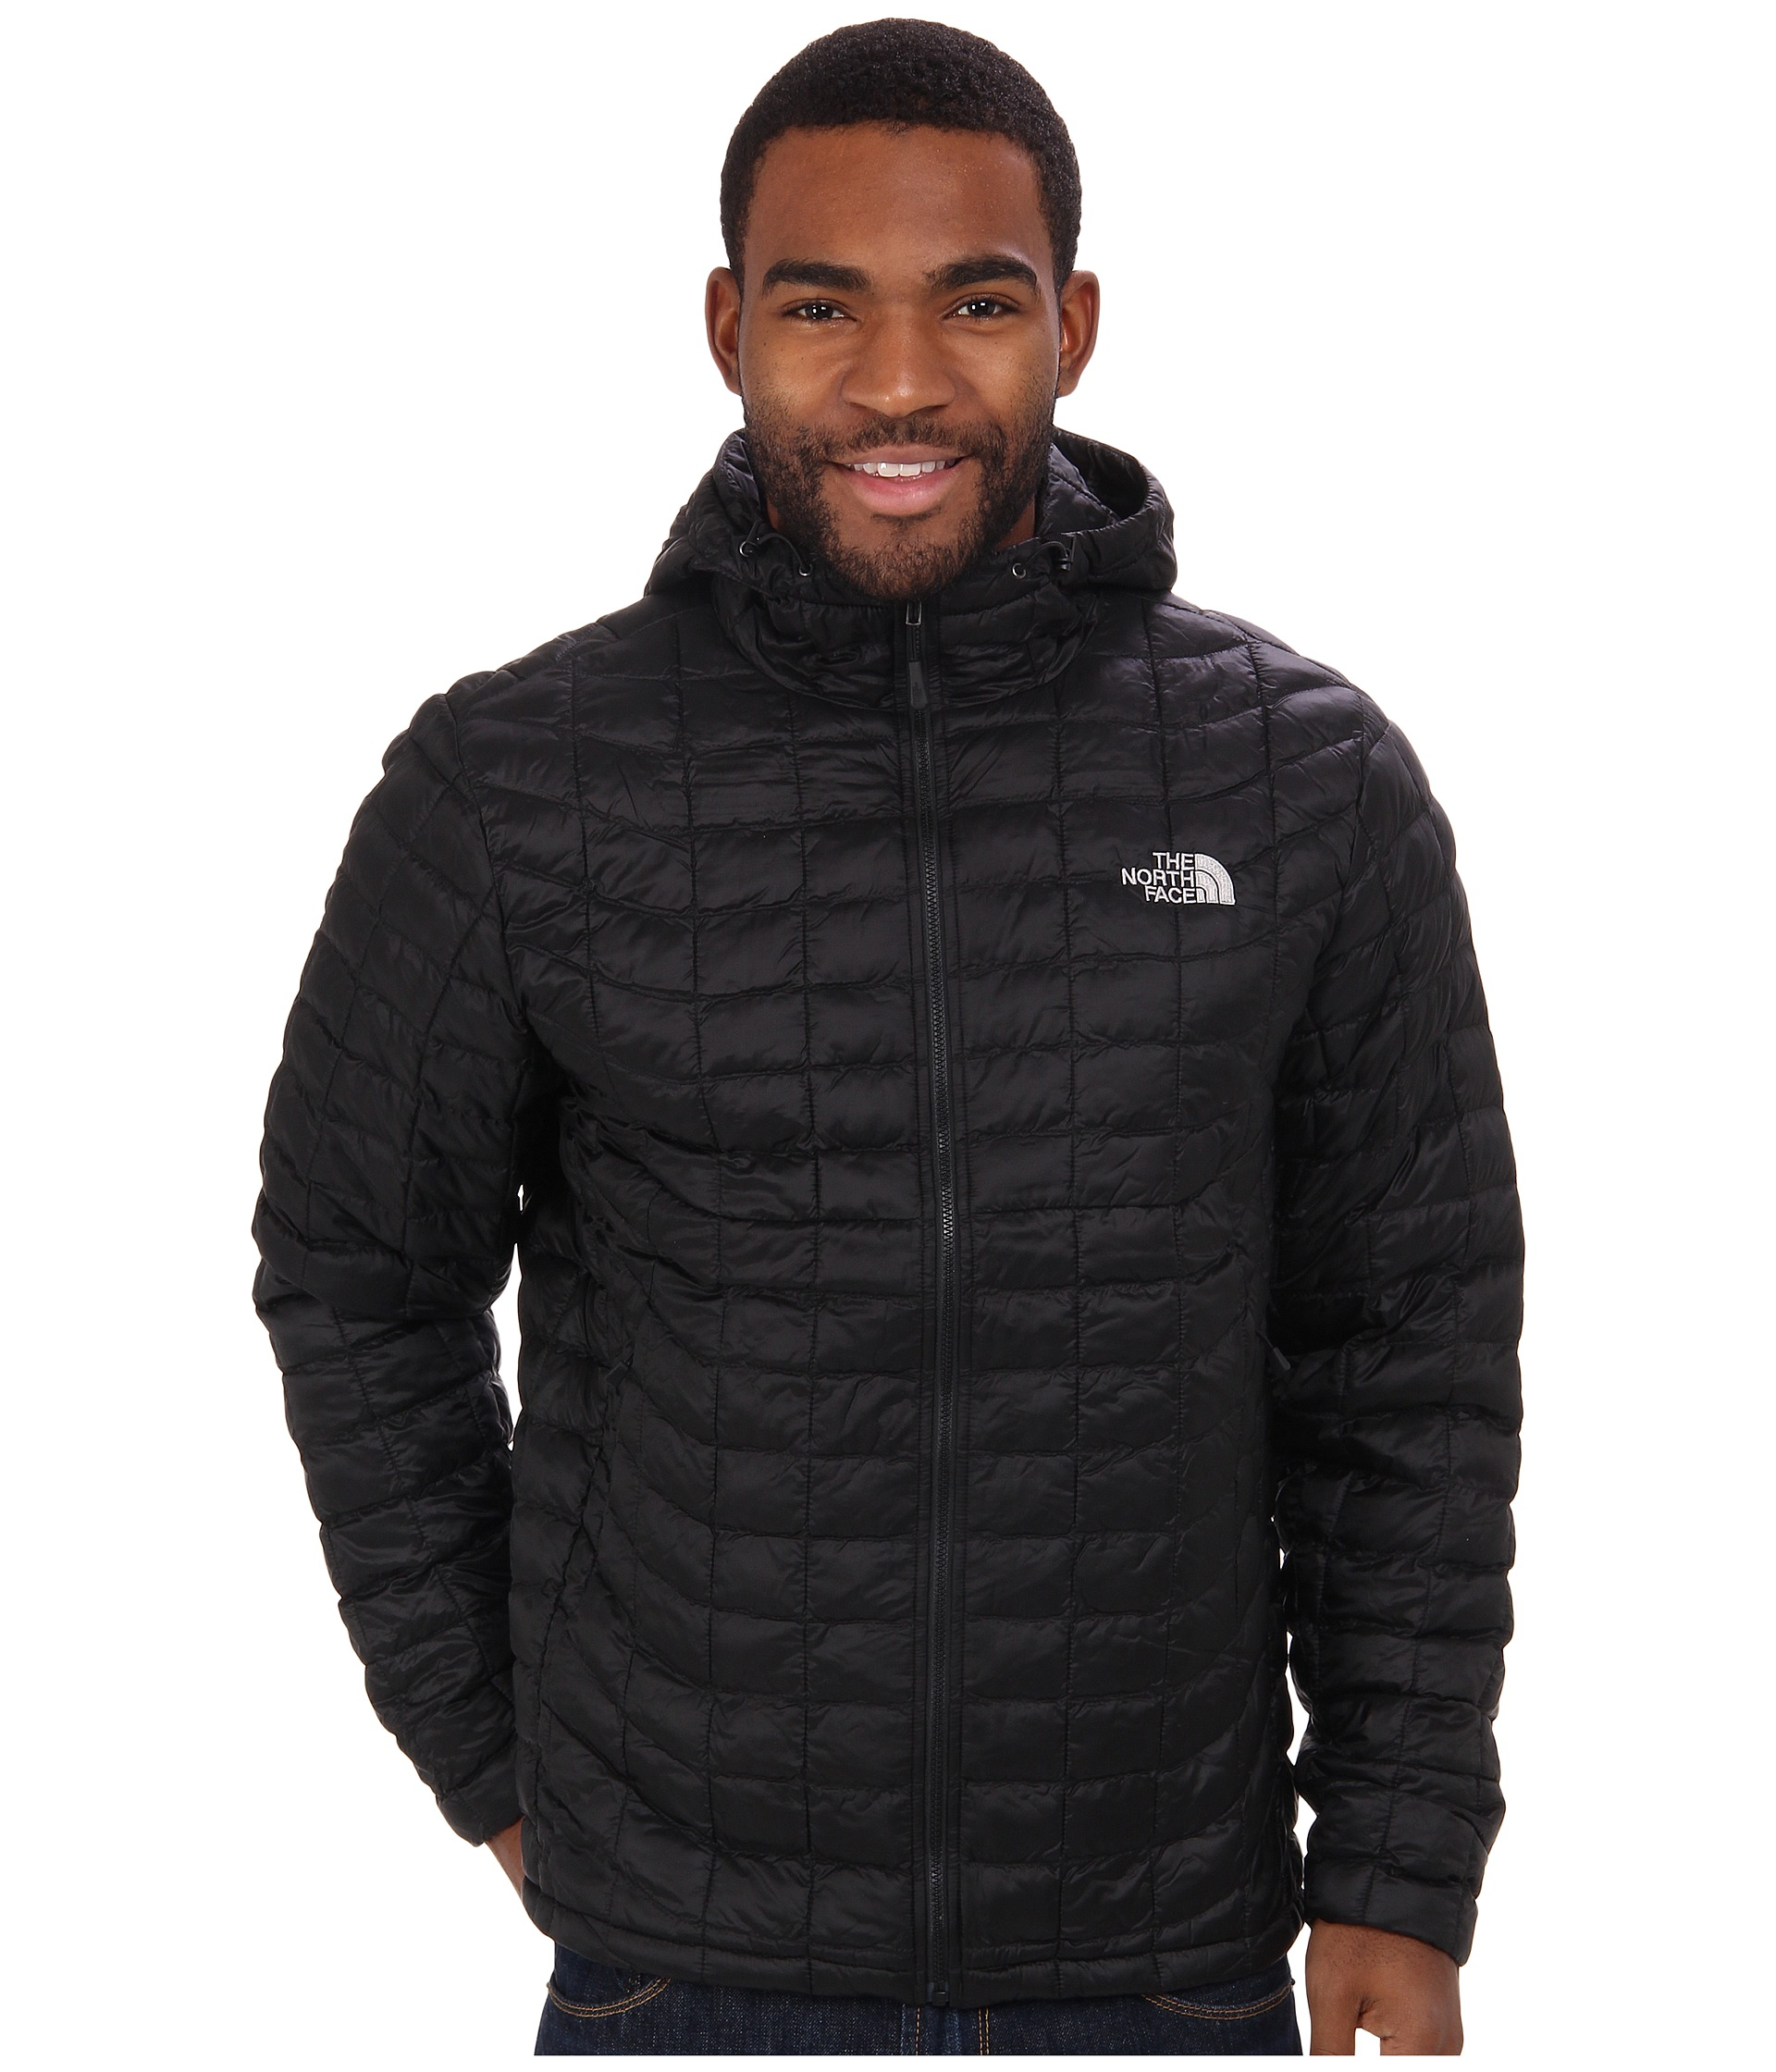 North face hoodie cheap